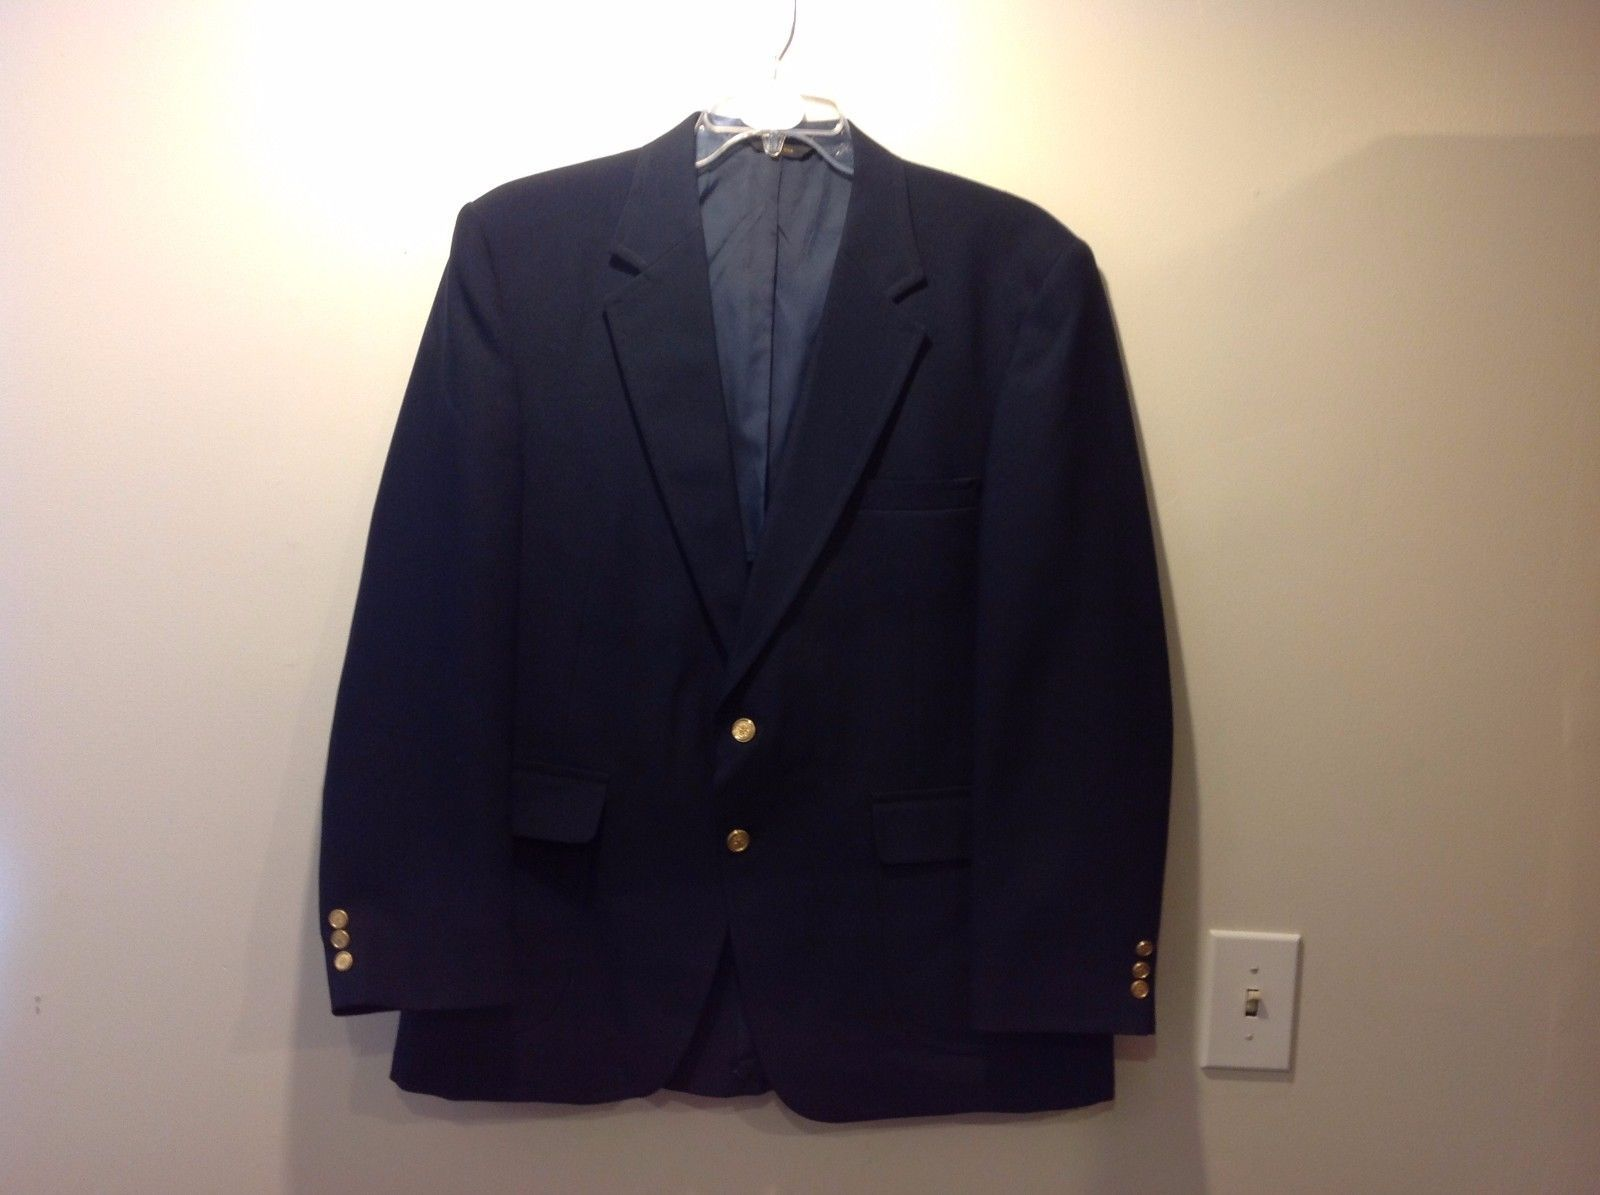 Towncraft Navy Blue Lined Sport Coat Jacket Blazer Sz 46R